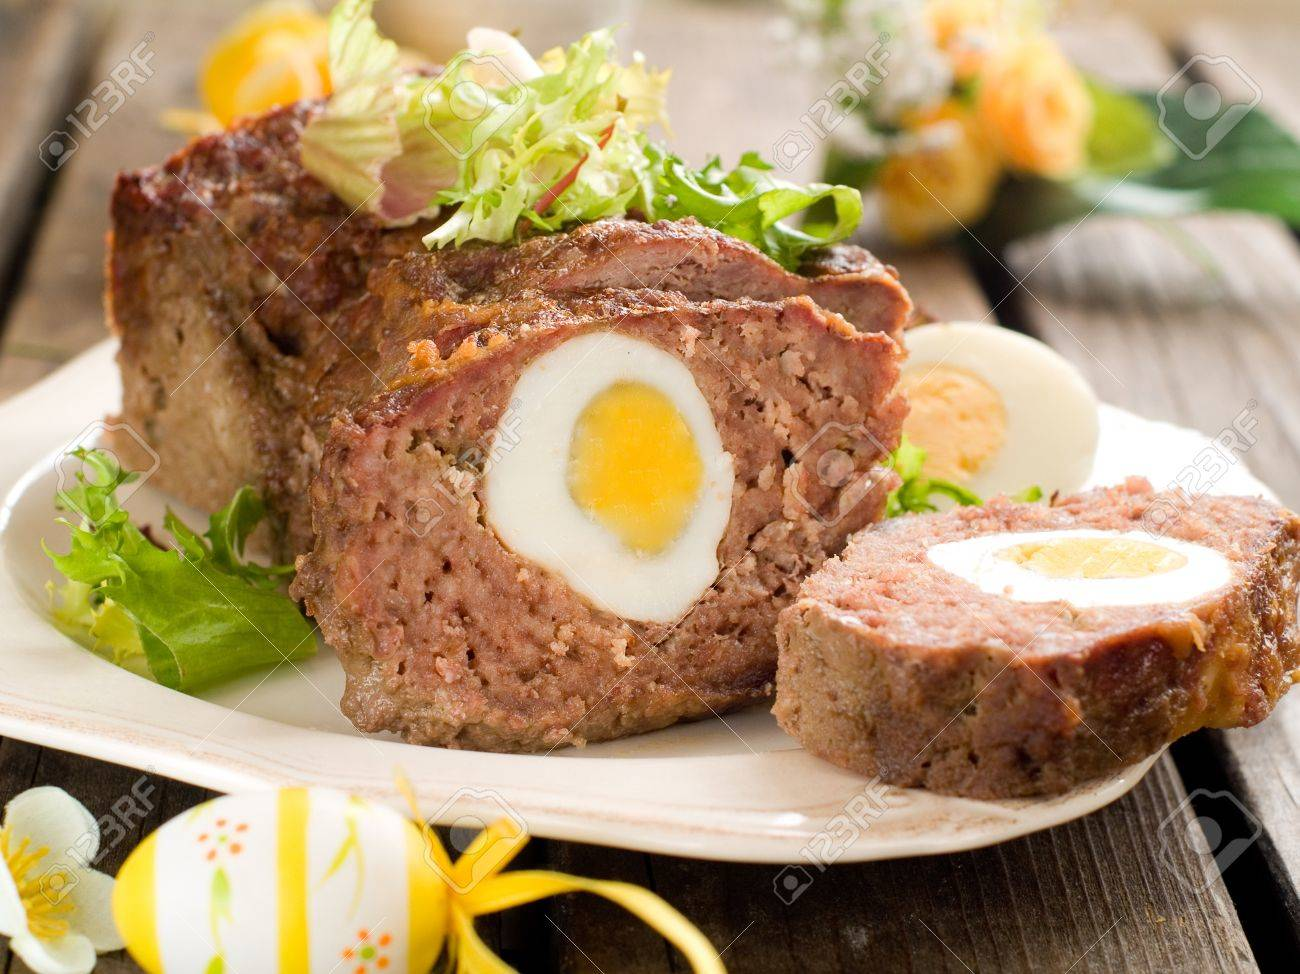 Meatloaf with egg for easter dinner, selective focus Stock Photo - 17331144